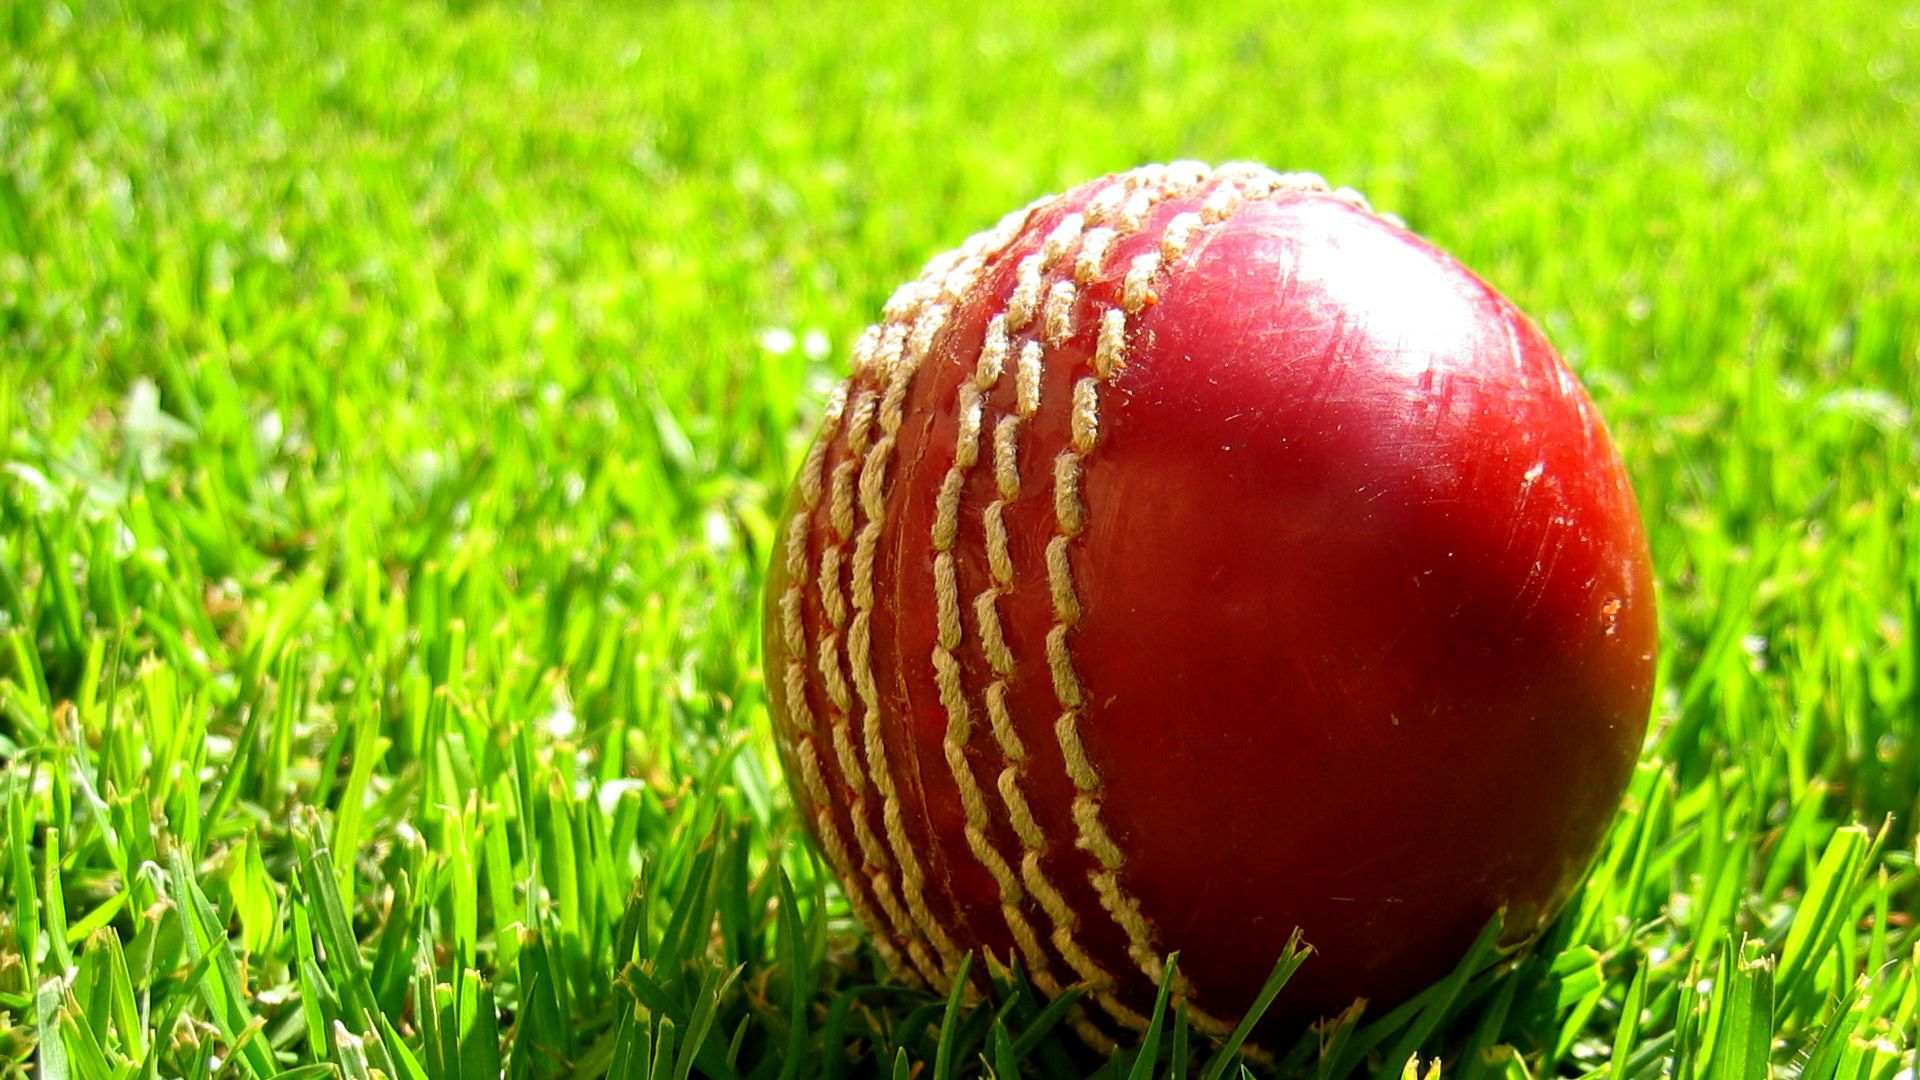 Cricket 1080p Wallpaper Http Wallpapers And Backgrounds Net Cricket 1080p Wallpaper Cricket Balls Cricket Wallpapers Cricket